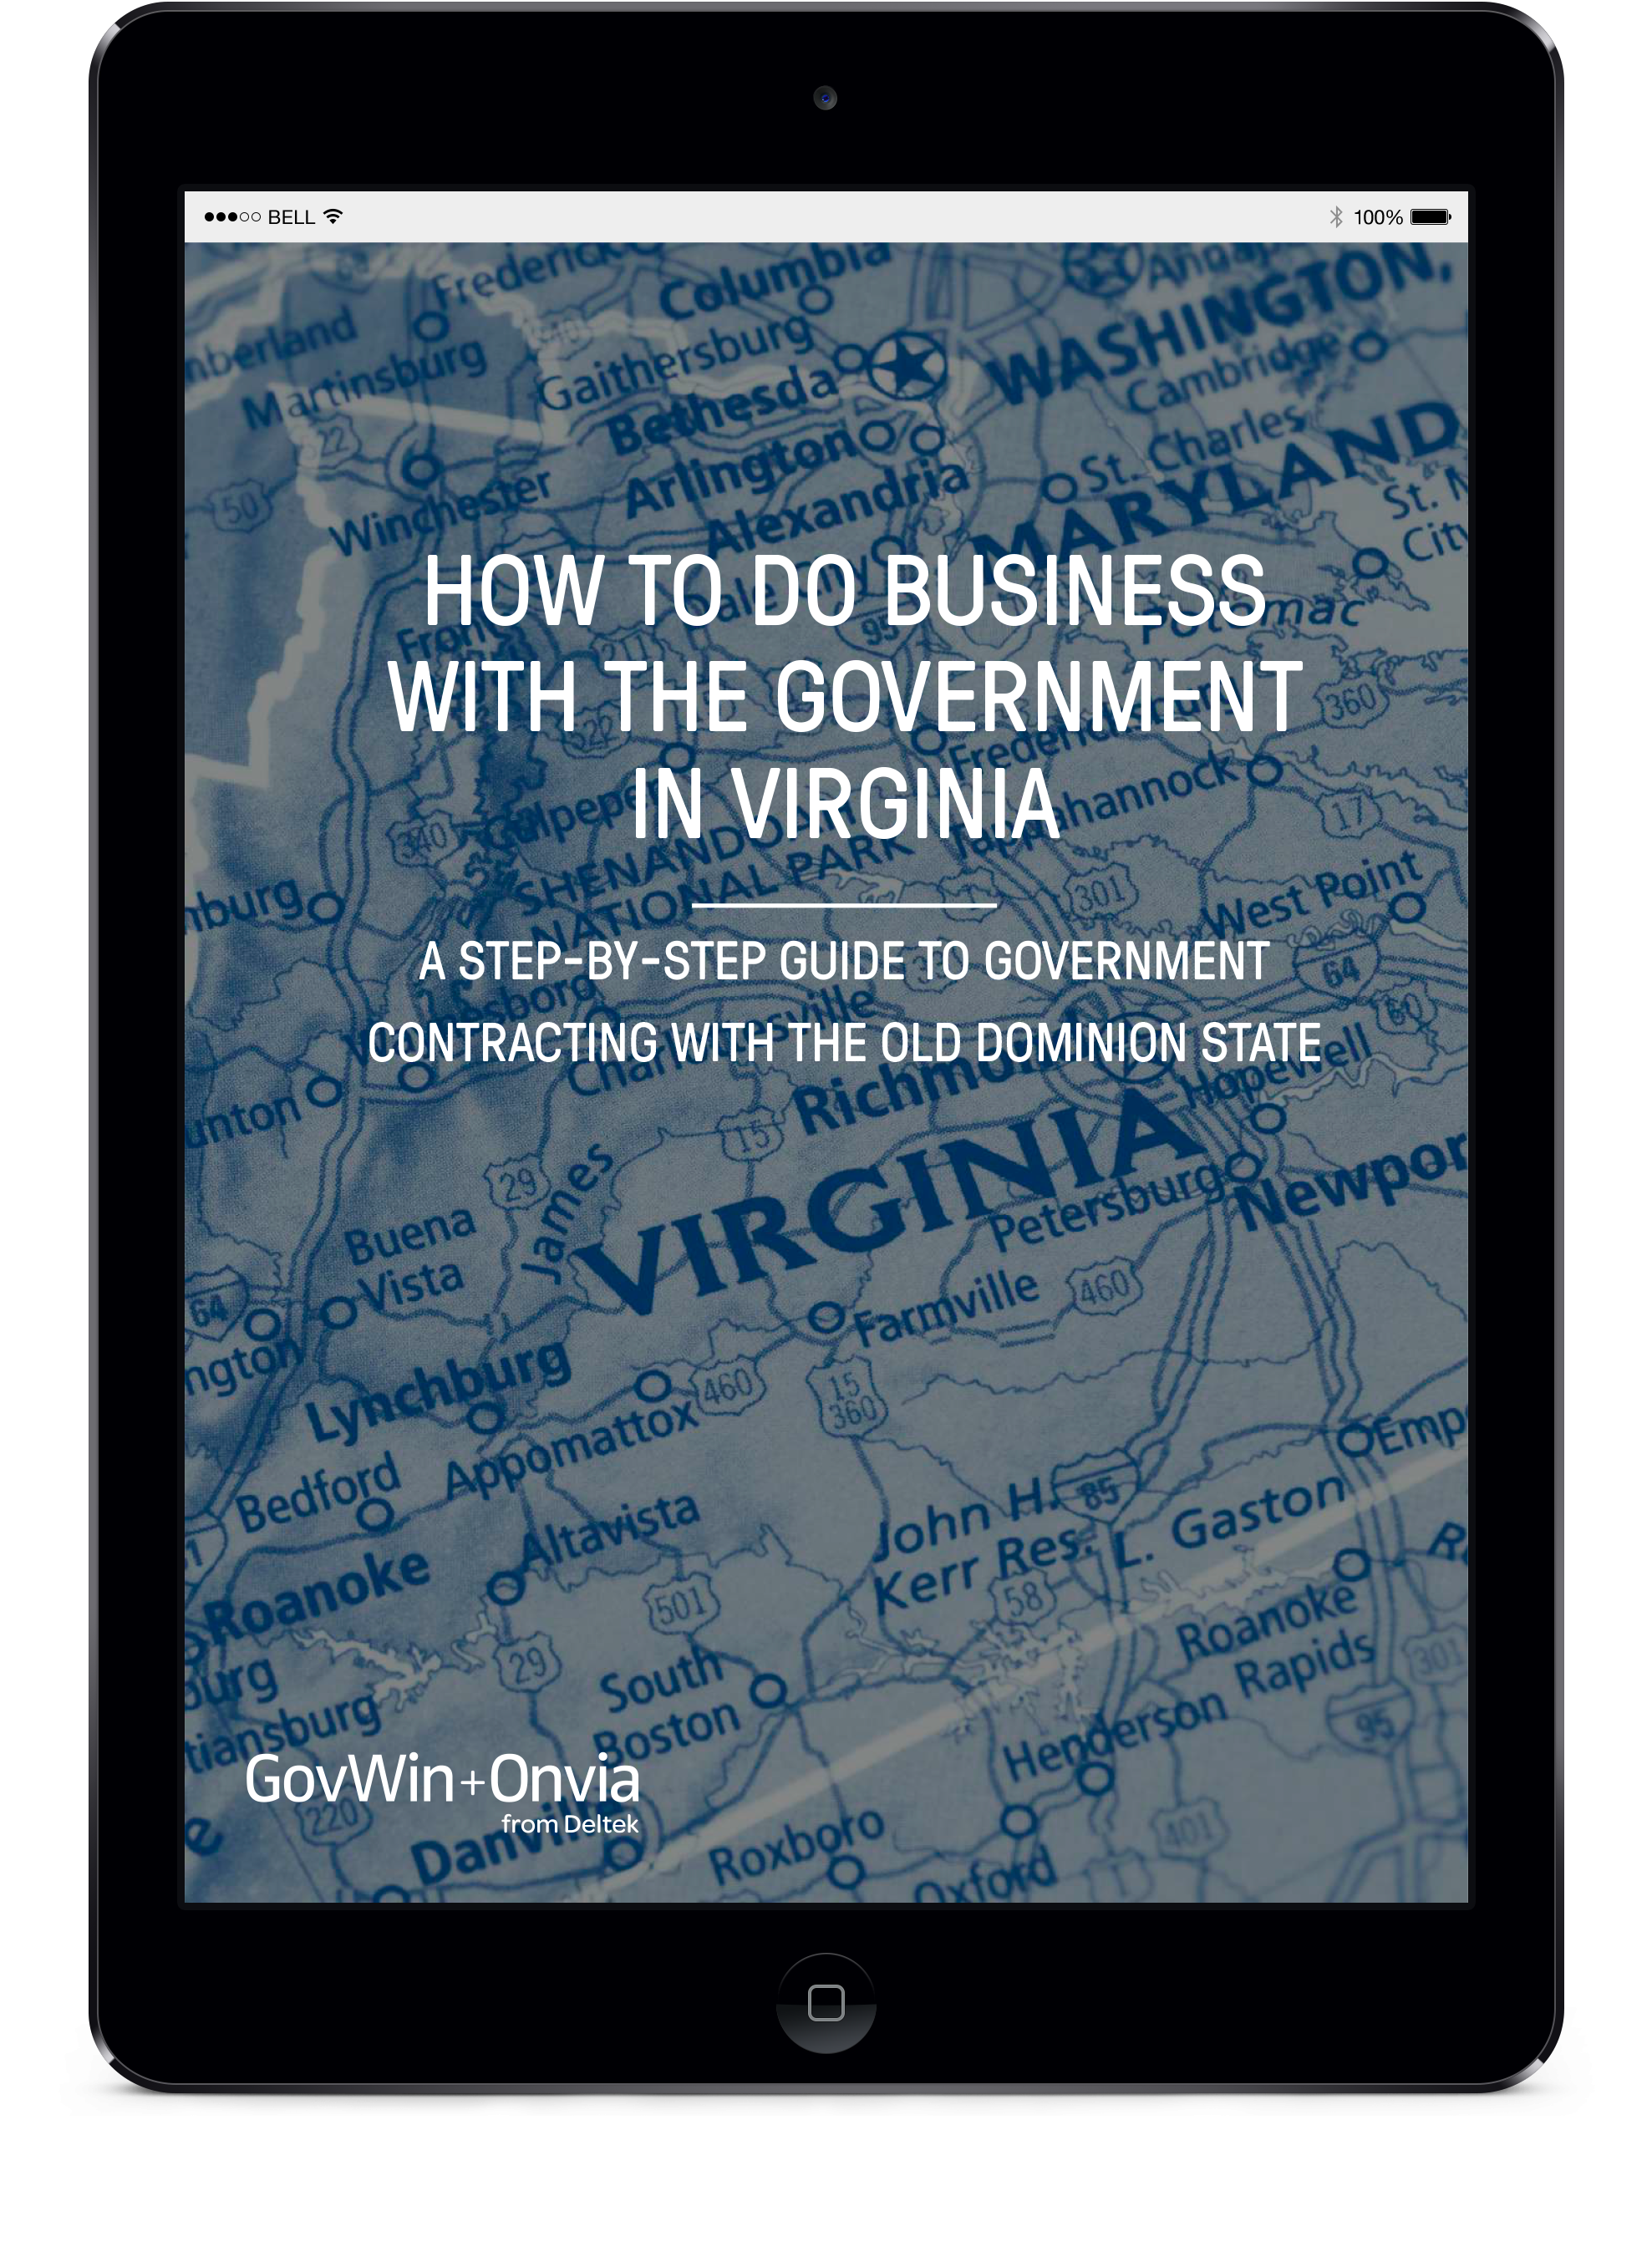 HHow to do Business with the Government in Virginia